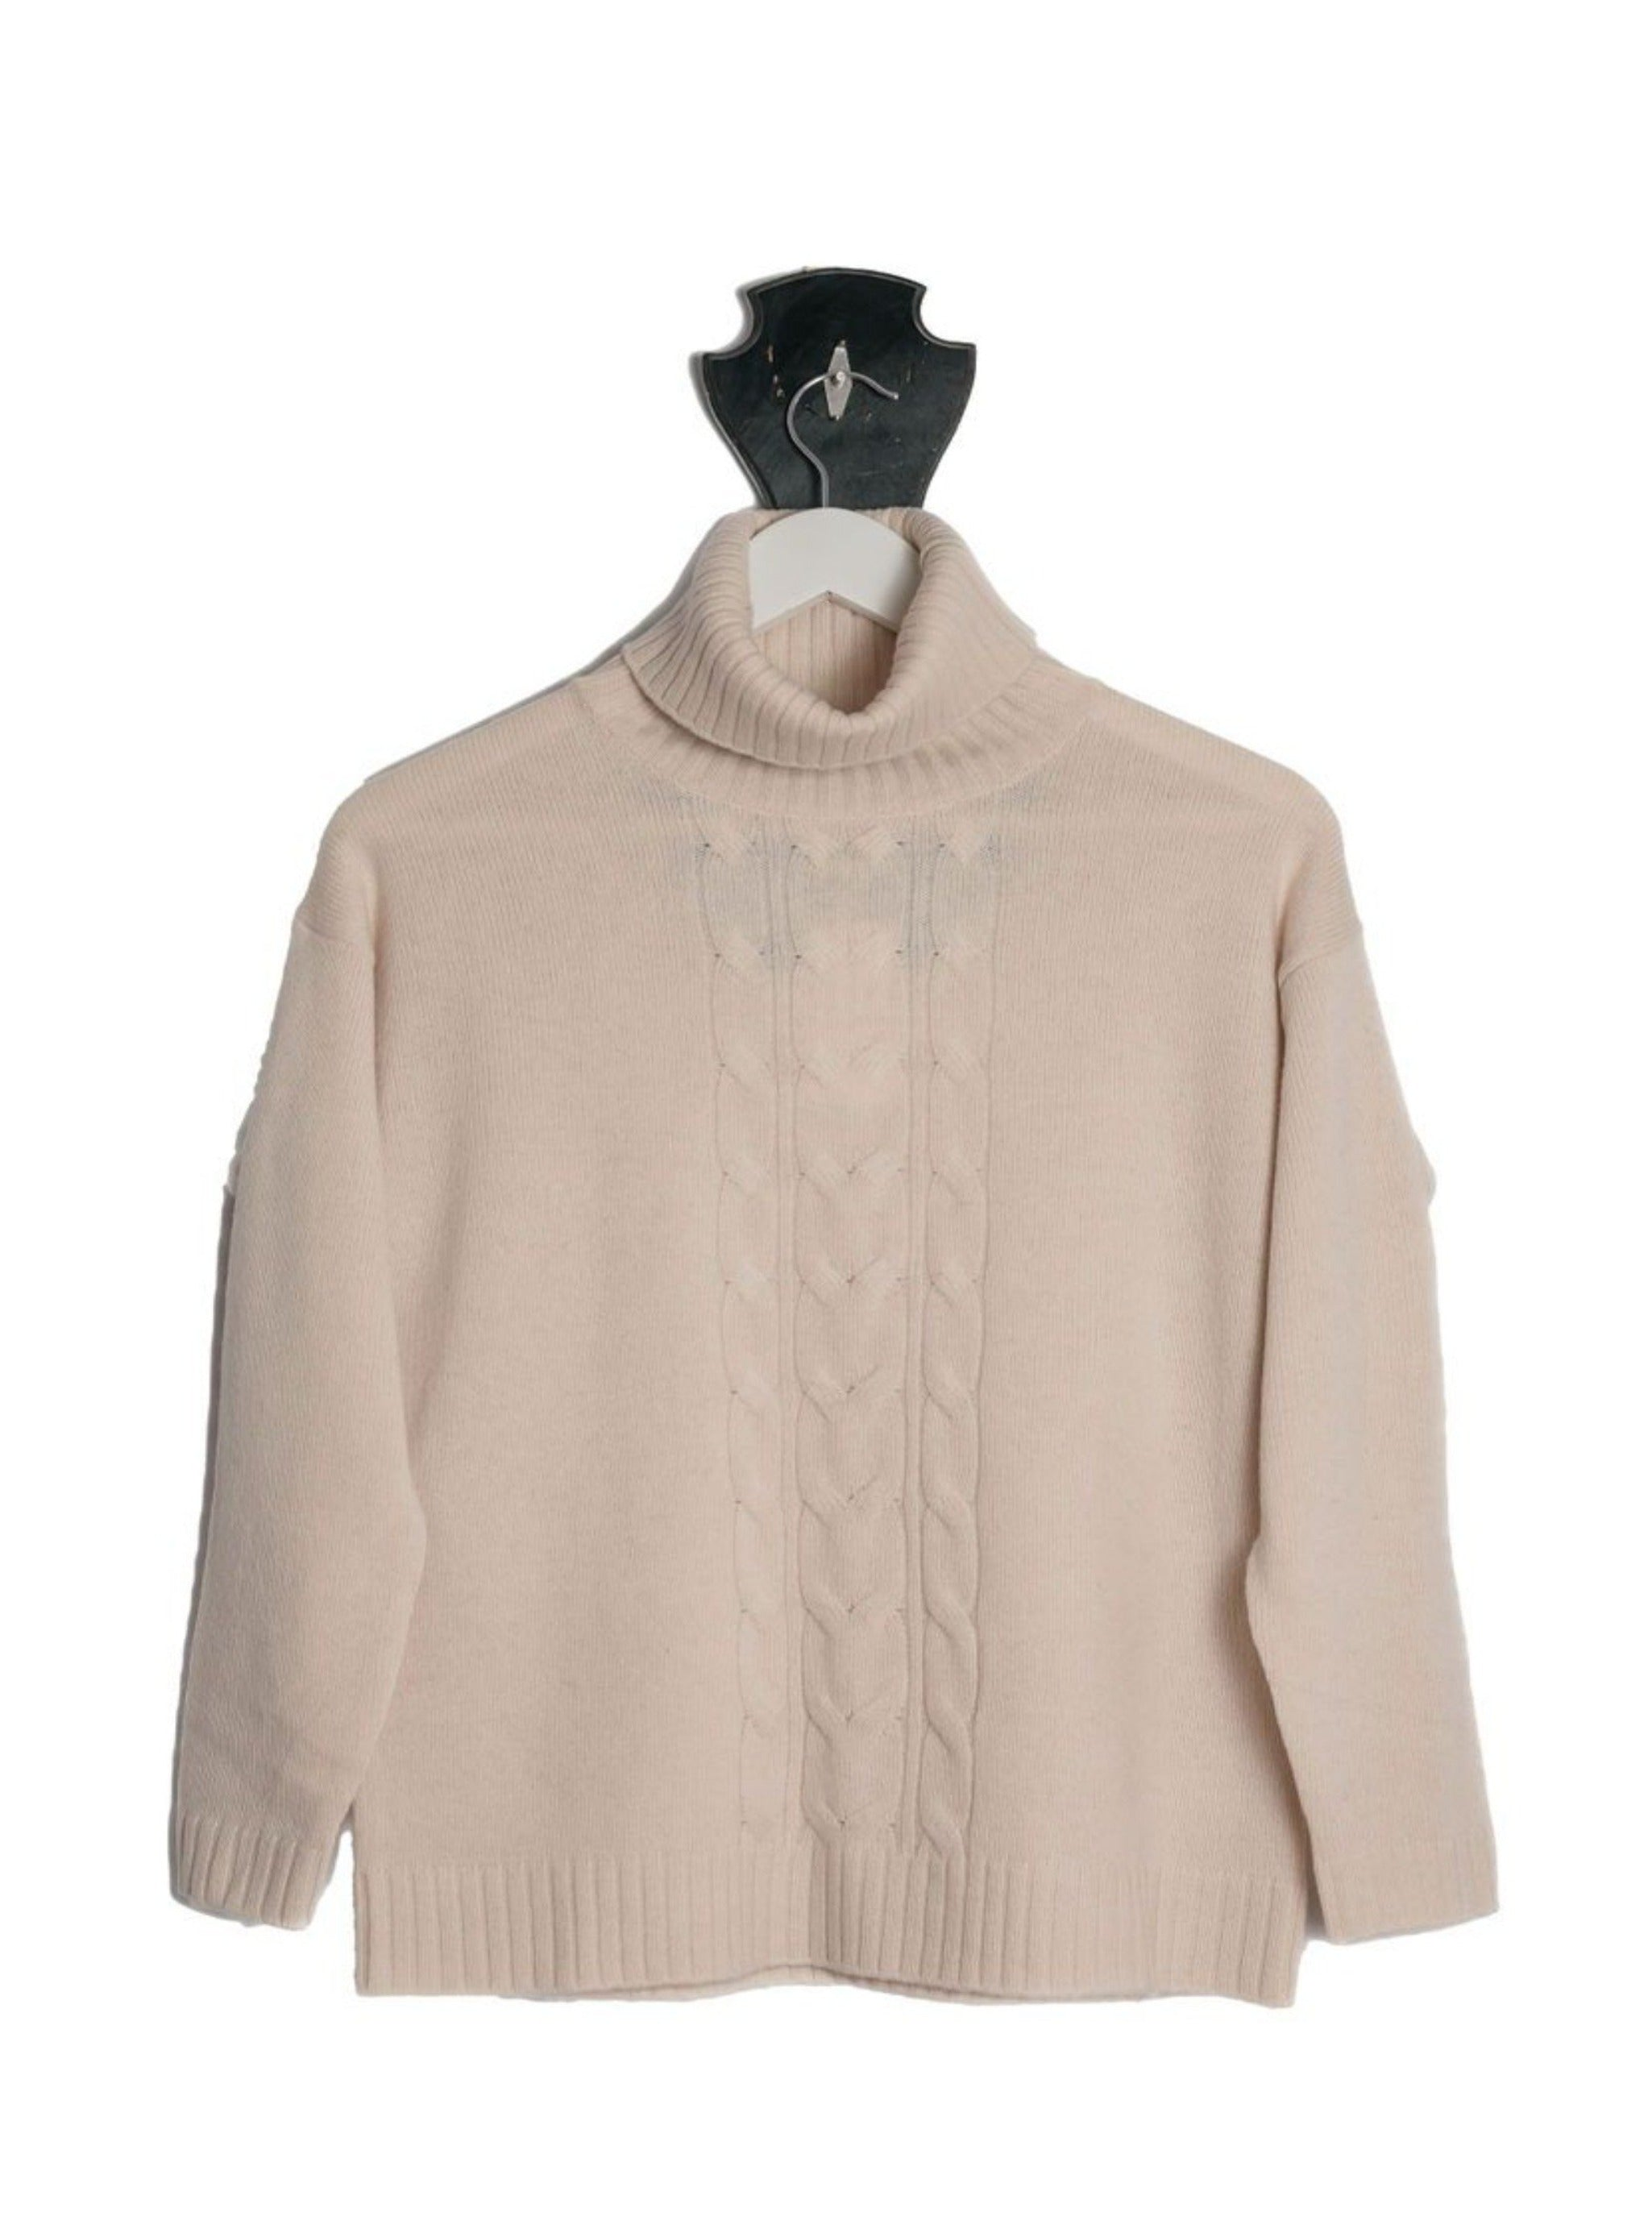 NEW LOOK Light Beige Cable Roll Neck Jumper